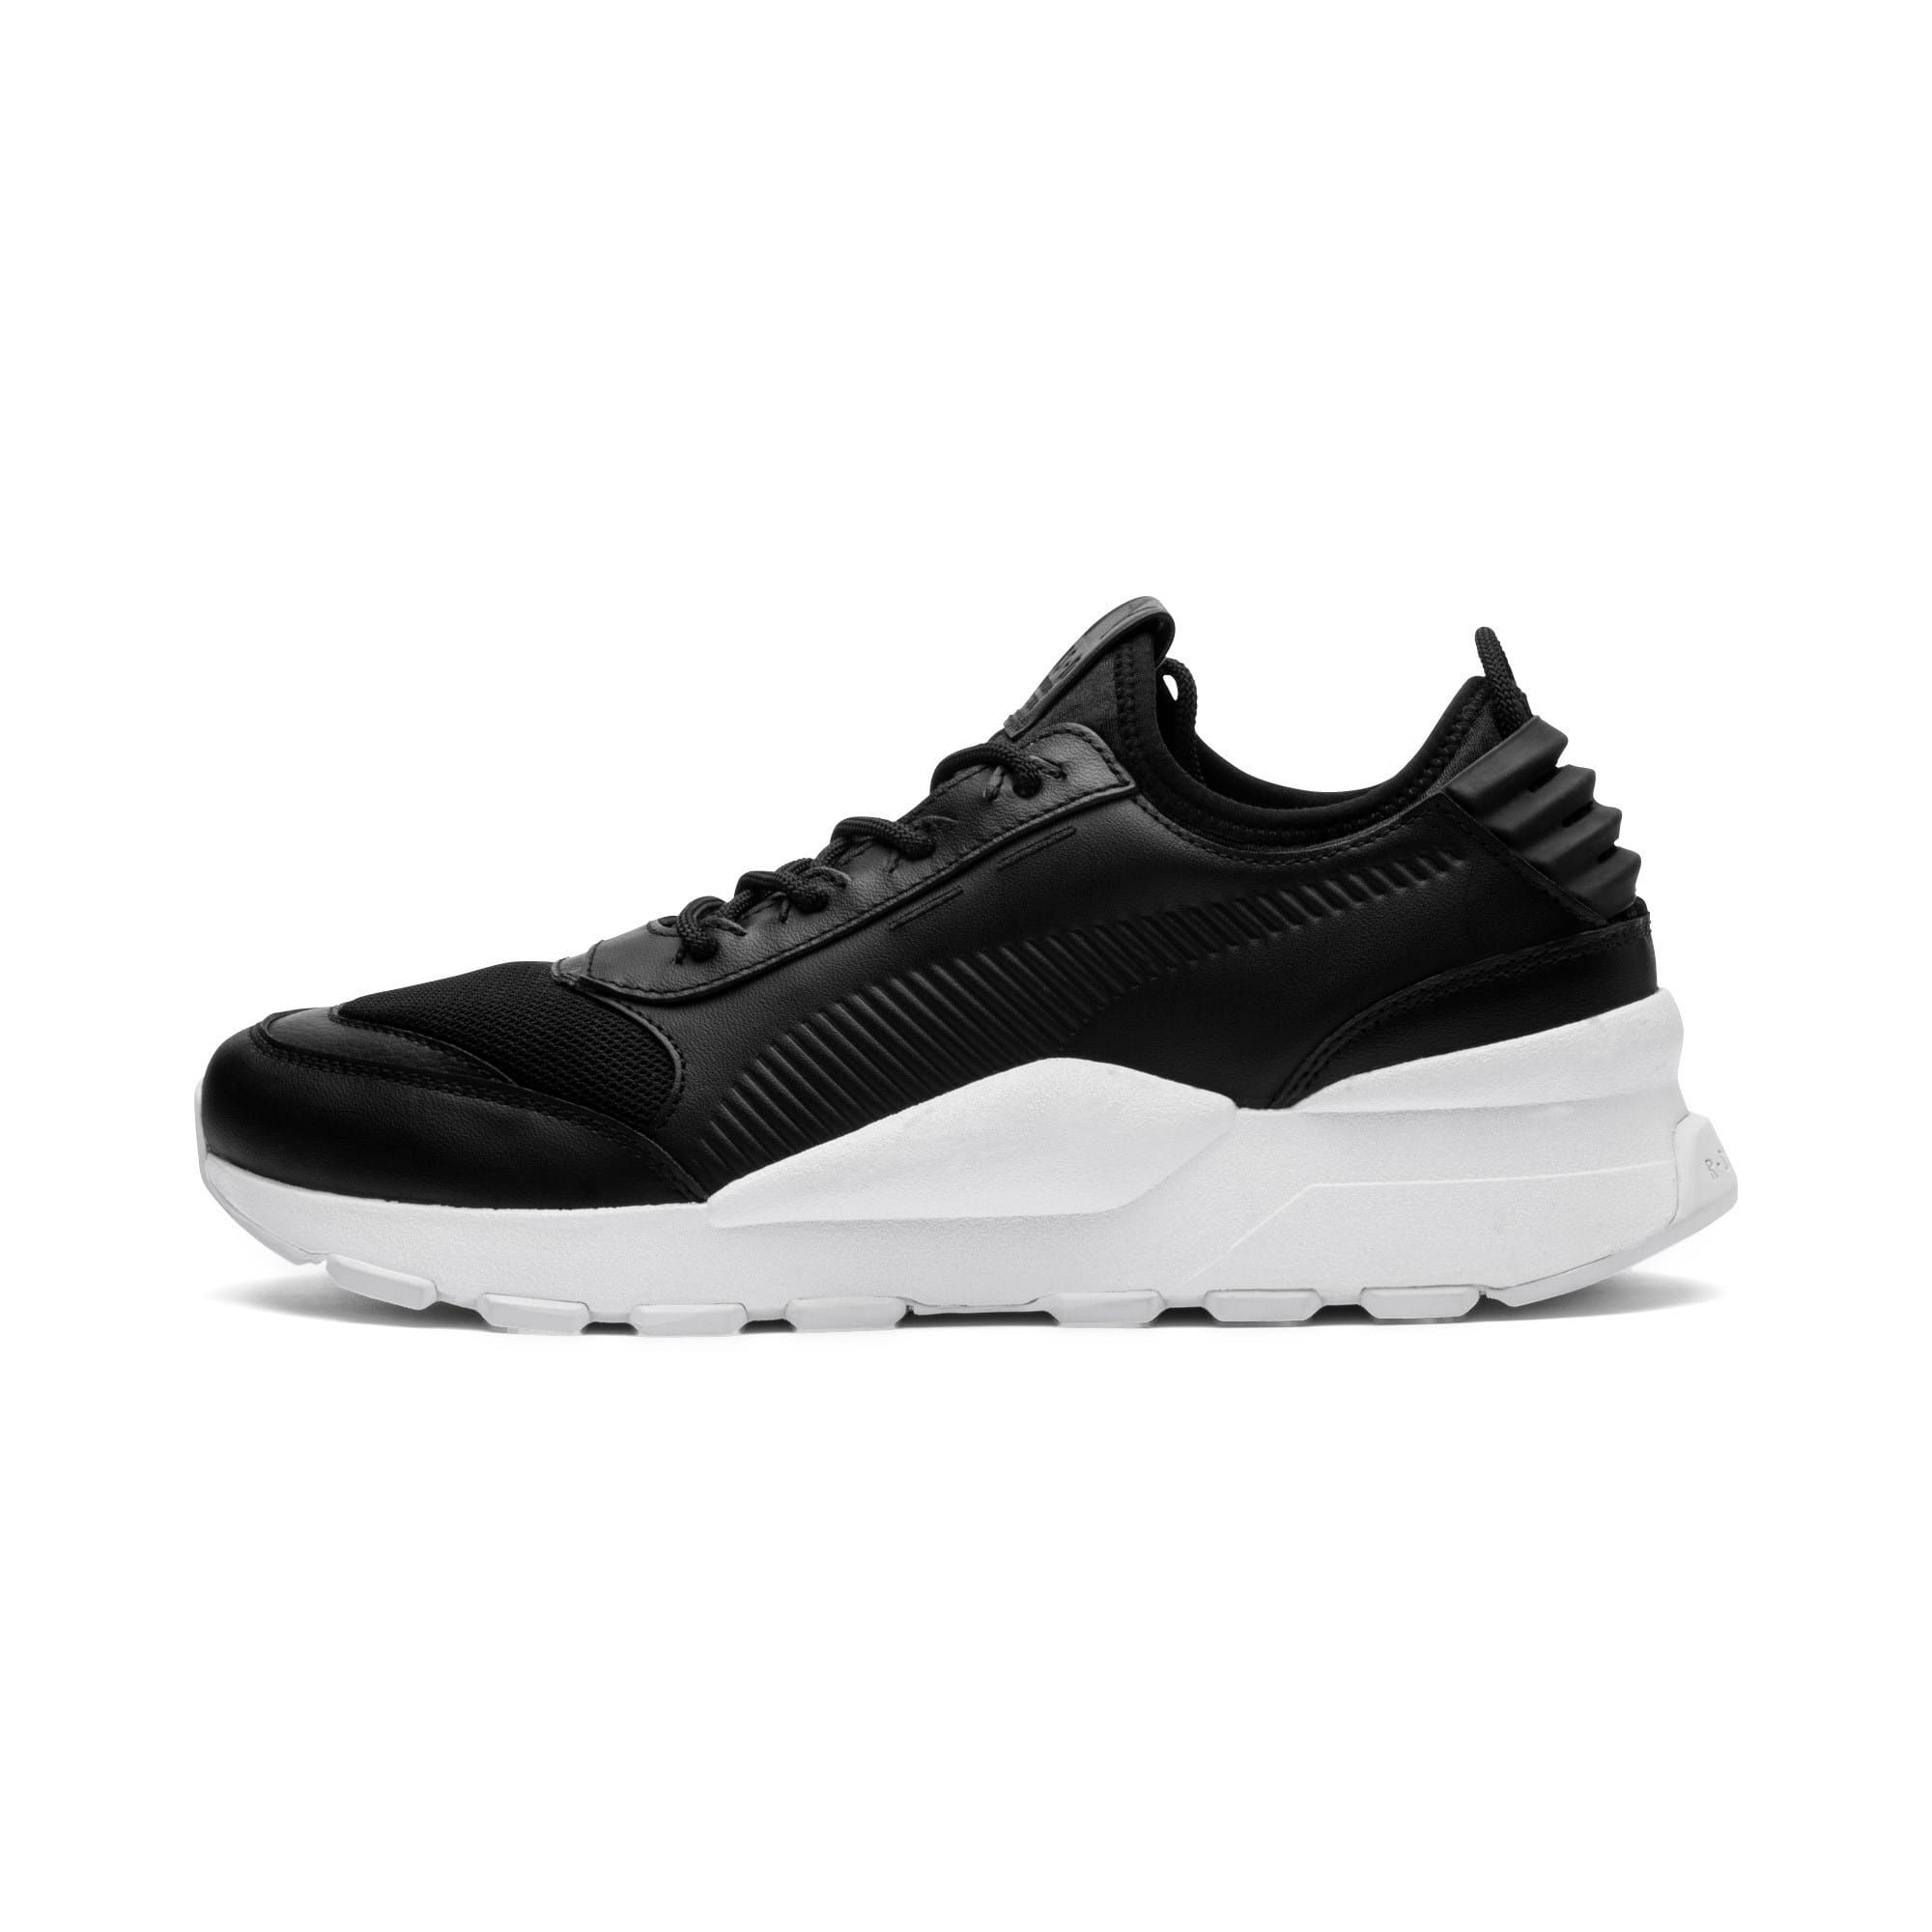 PUMA Evolution RS-0 Sound Trainers in Black size 10.5 #shoegame